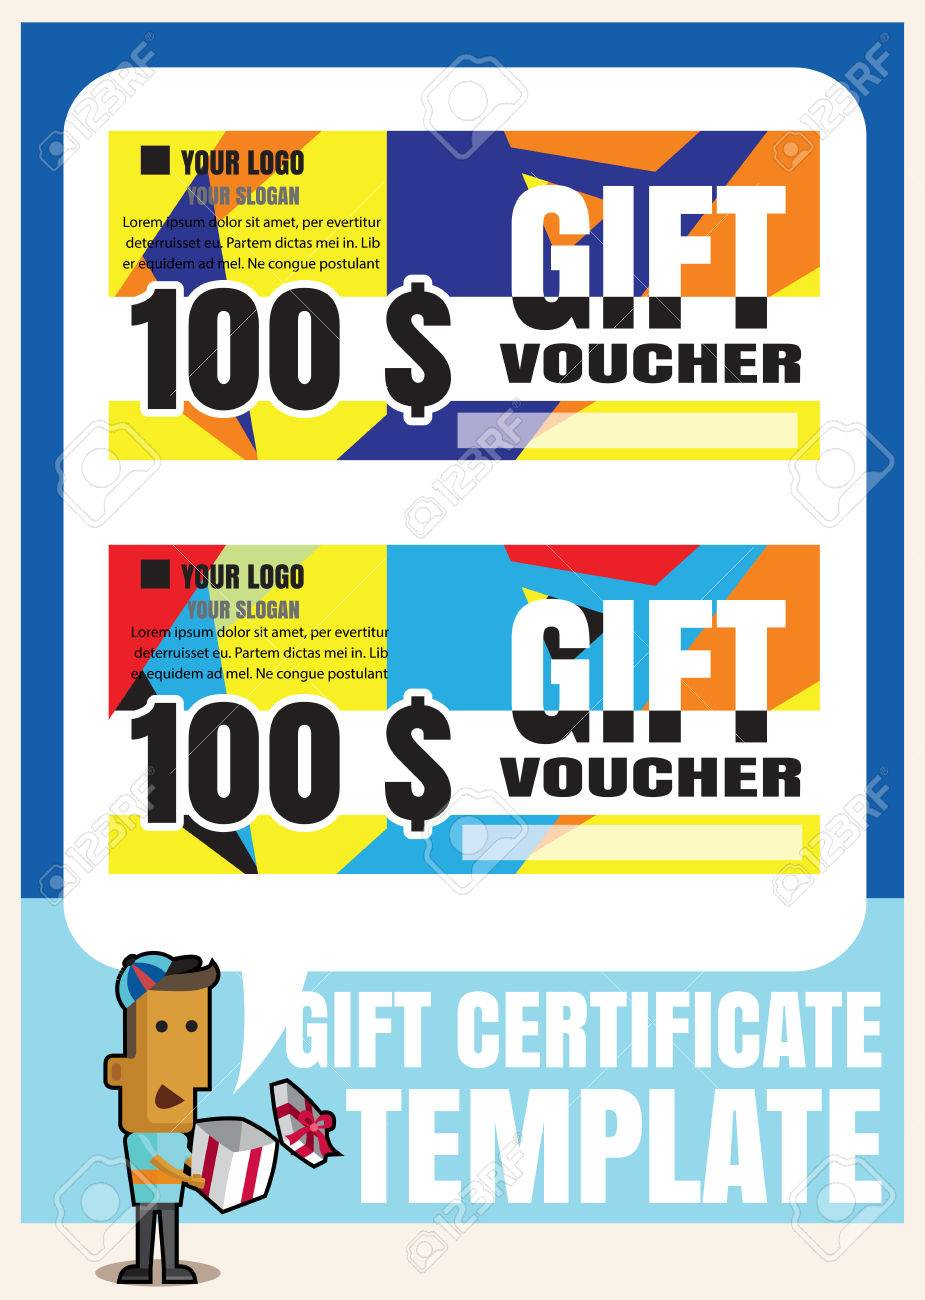 Gift Certificate Voucher Coupon Template Modern StyleGift Voucher - 100 gift certificate template